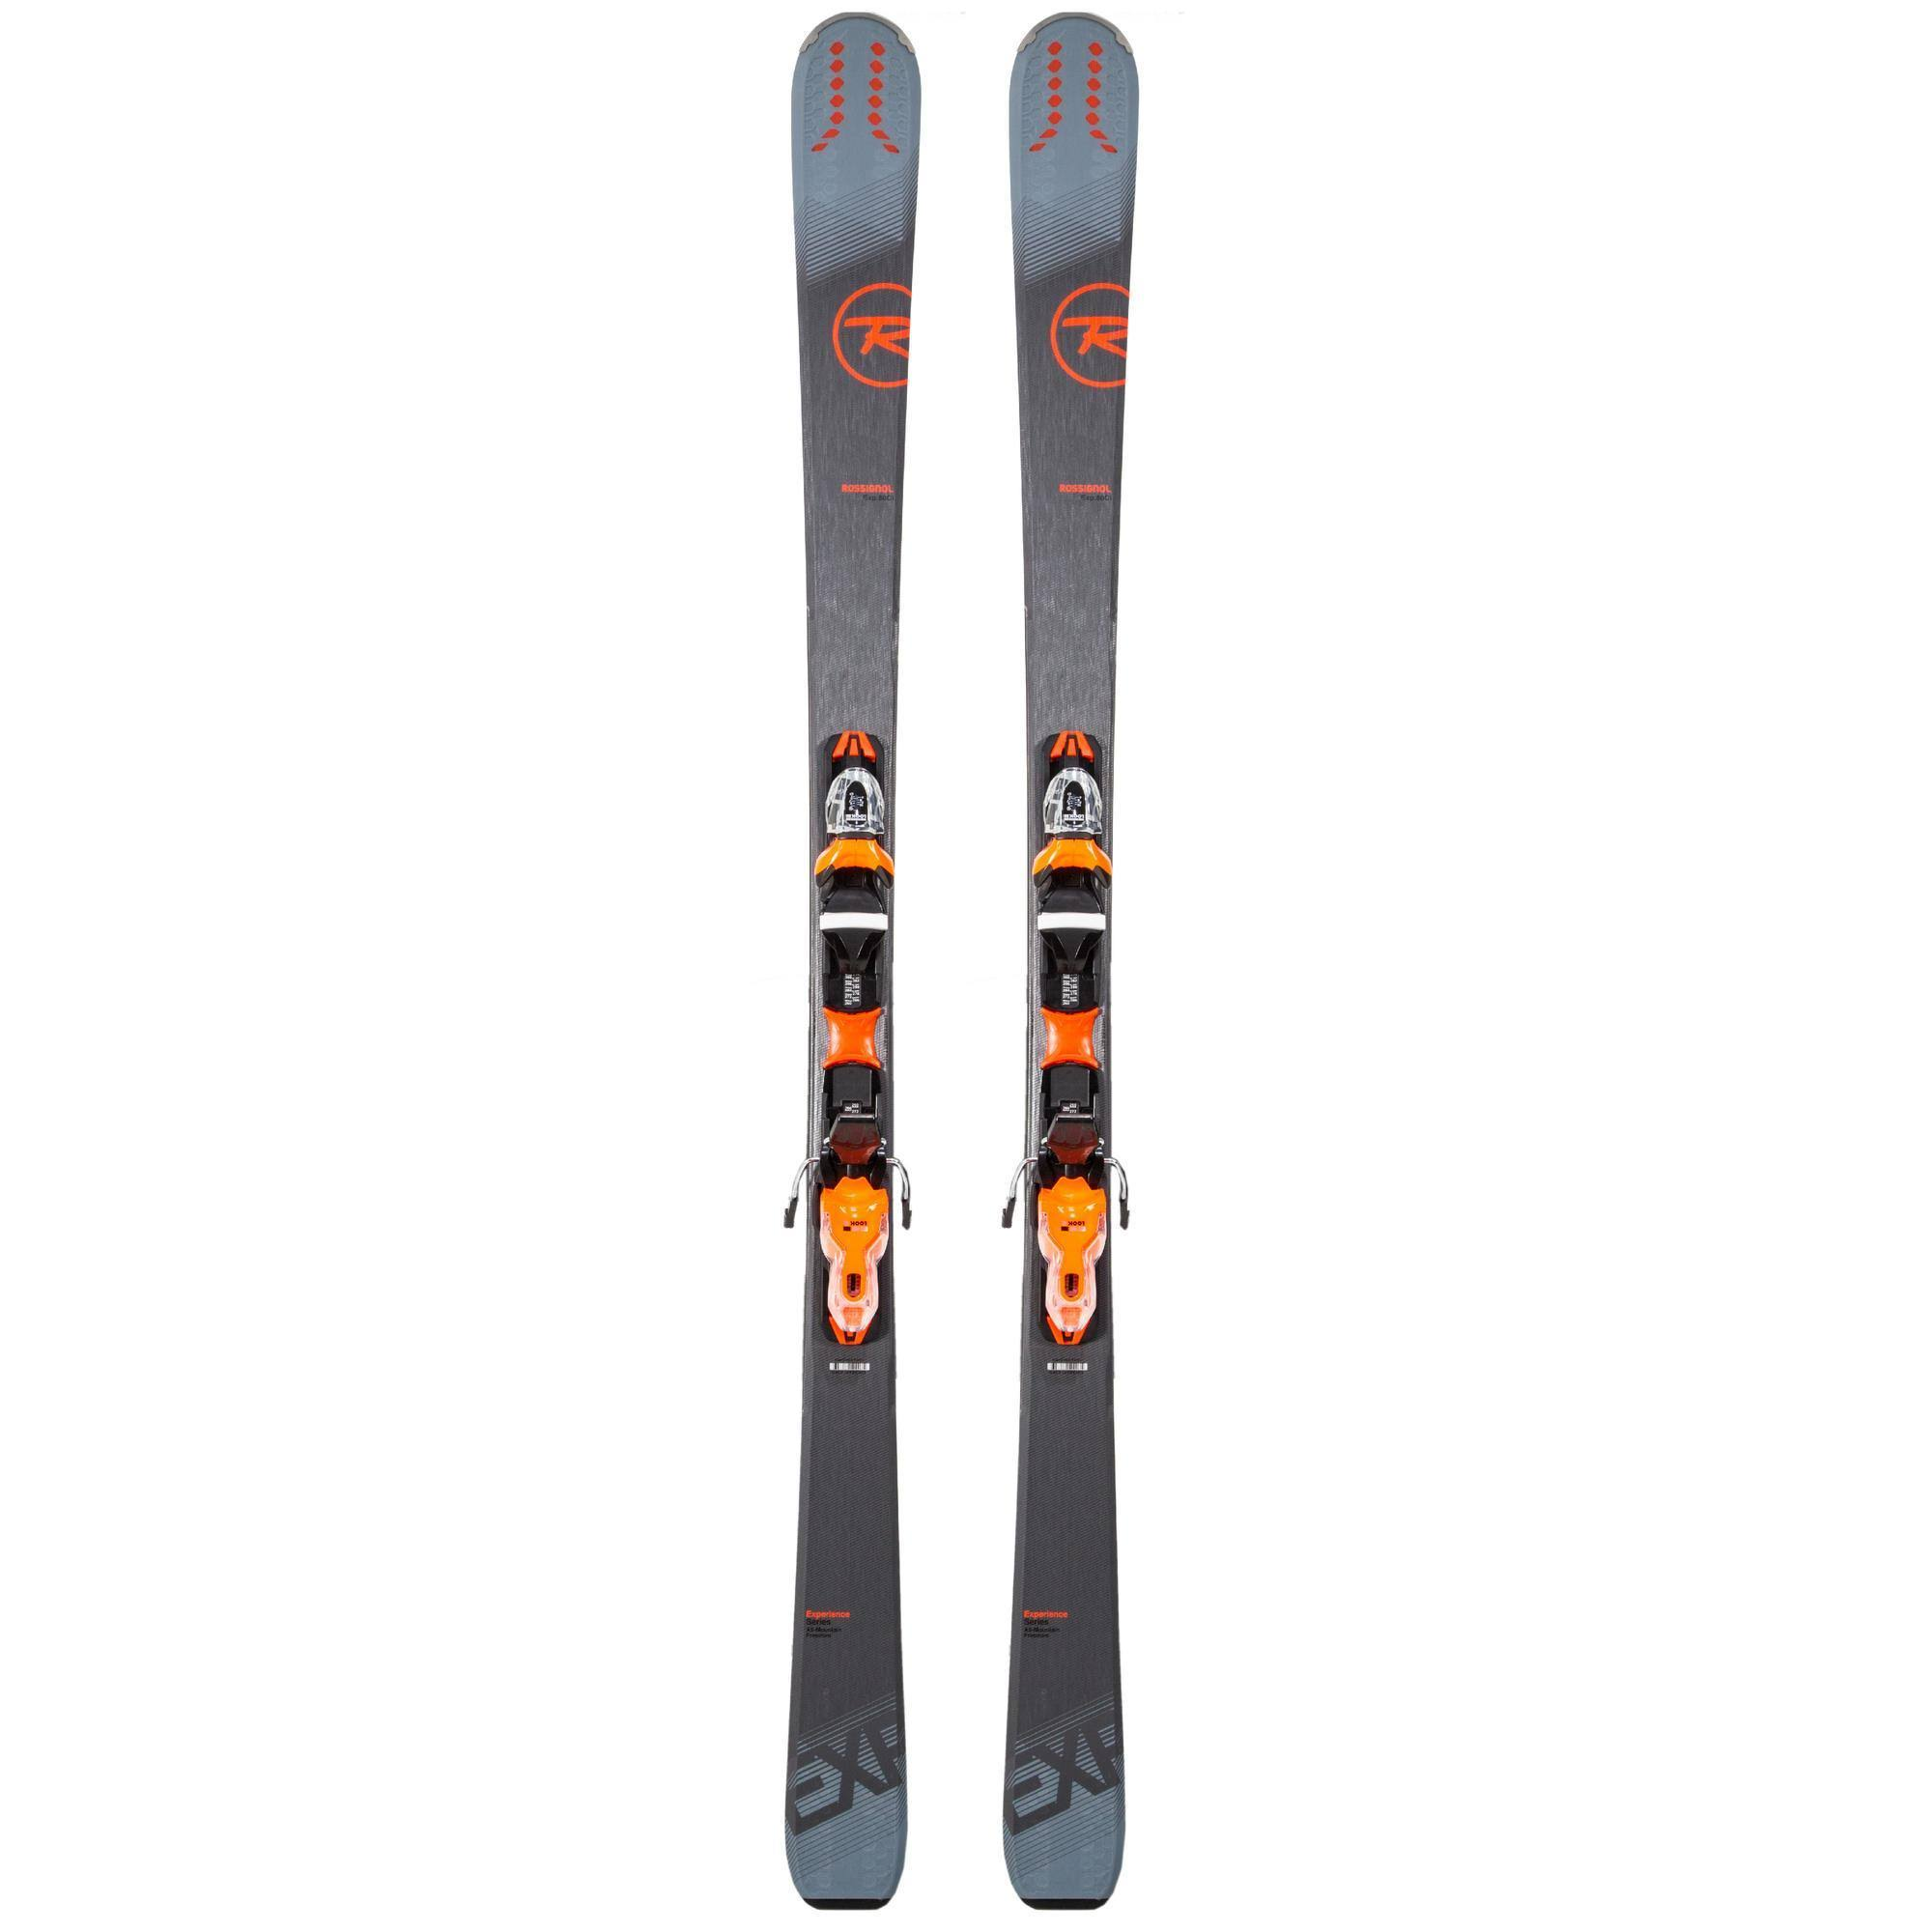 Decathlon Mens Rossignol All Mountain Experience 80 Ci with Bindings Ski - Gray/Orange